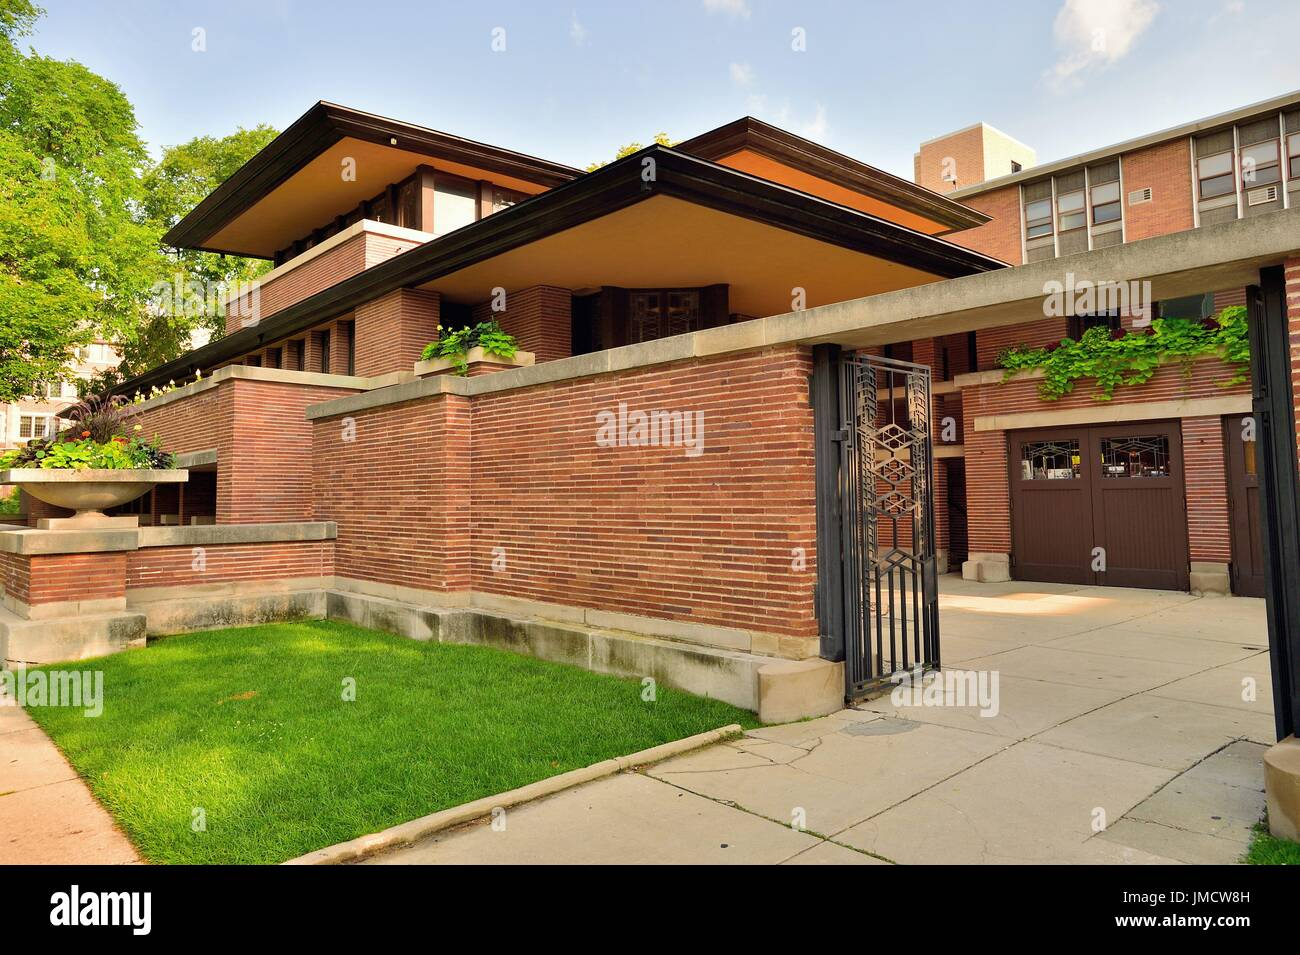 the robie house university of chicago stock photos the robie house